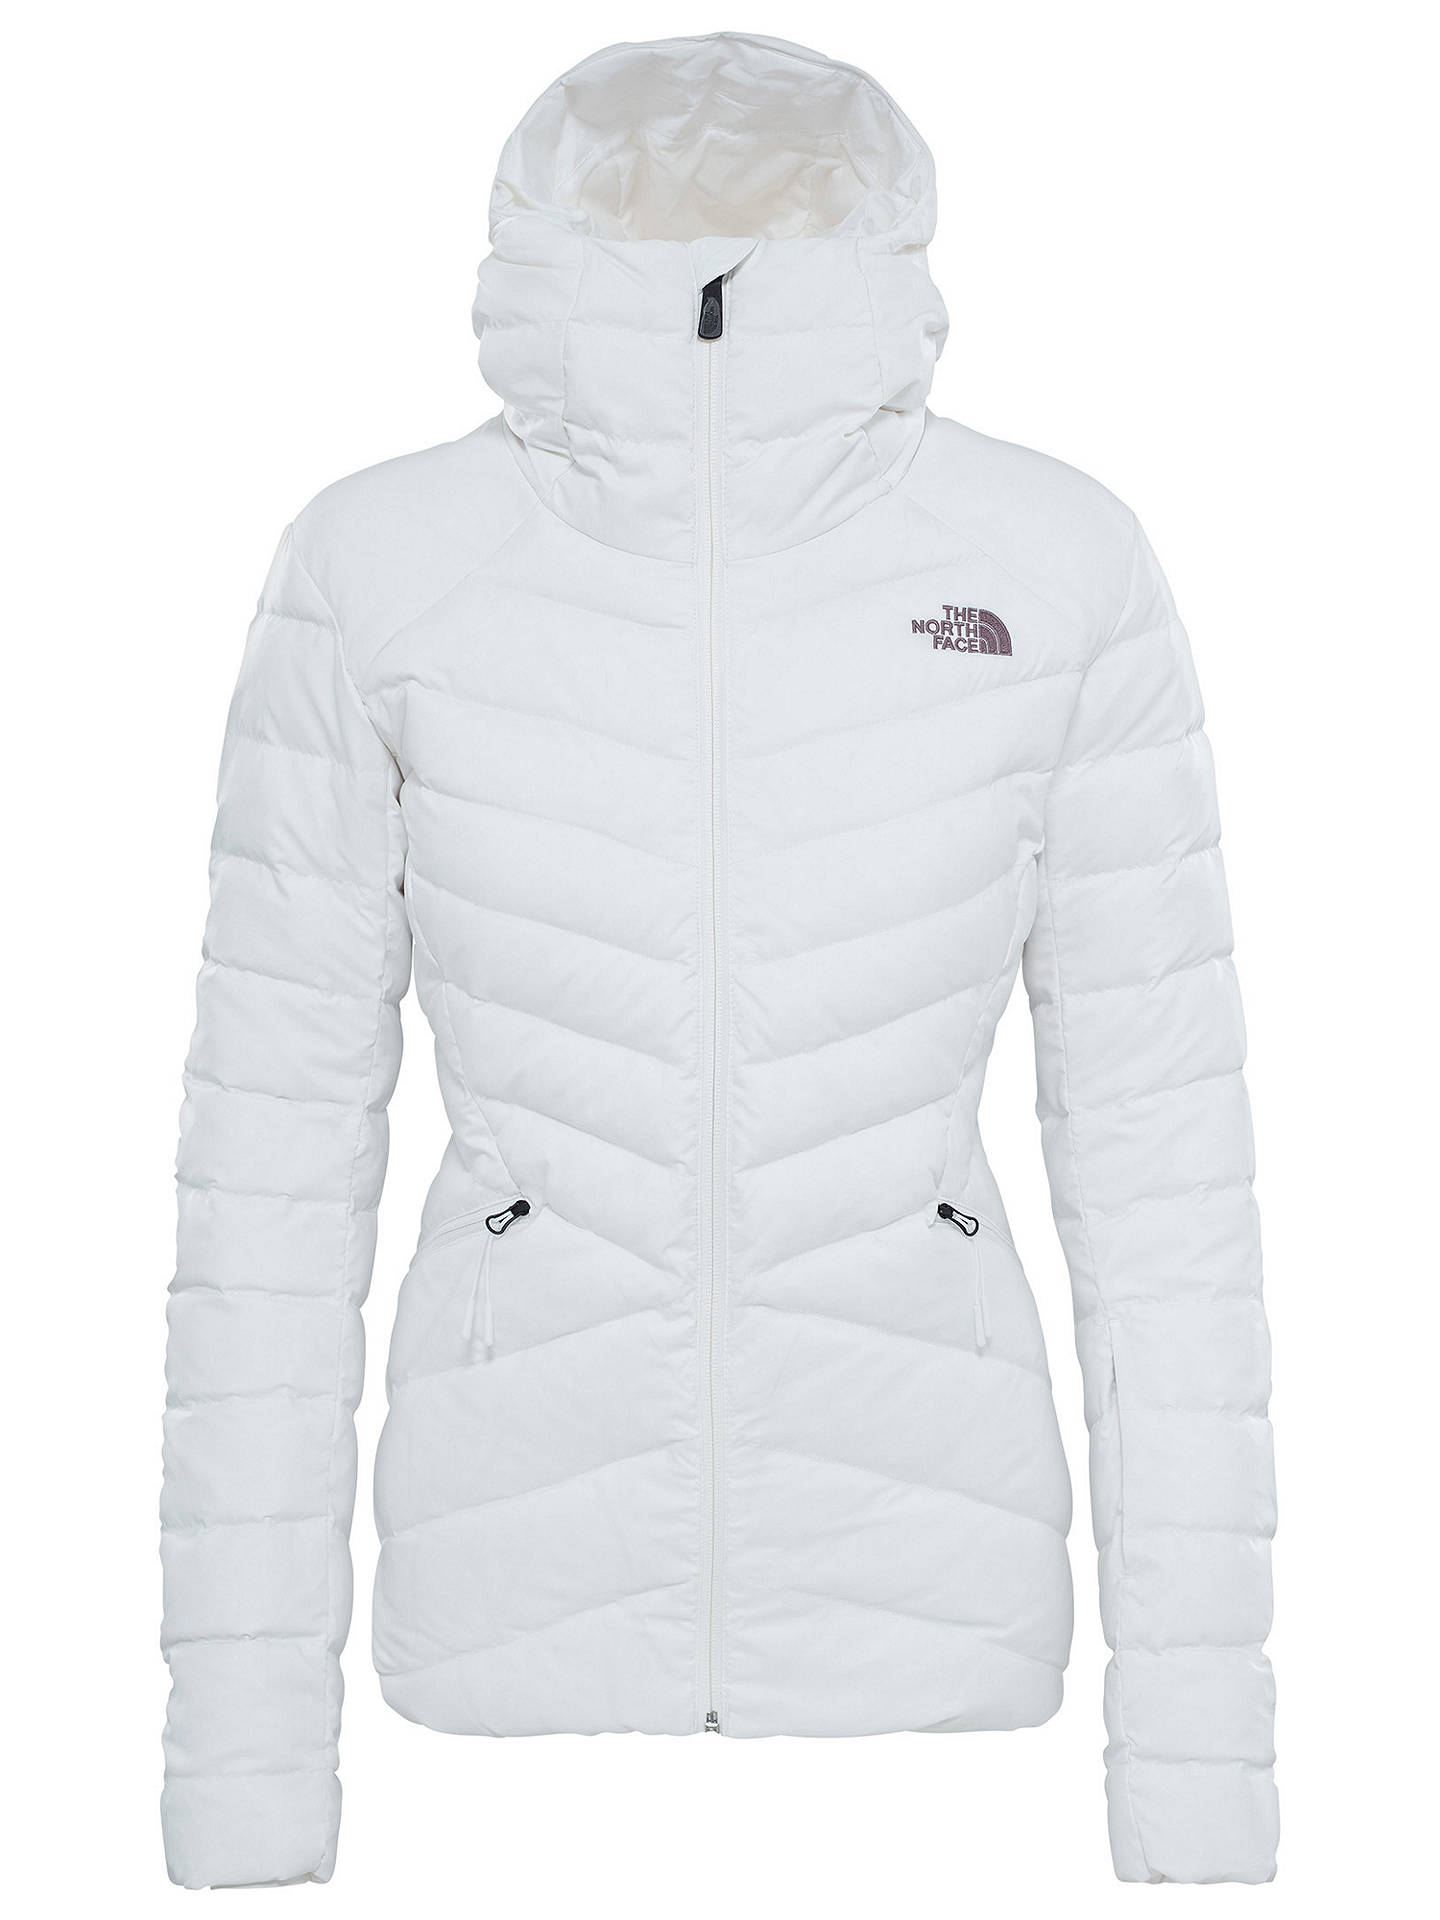 a47e28c4fb008 Buy The North Face Moonlight Down Women's Jacket, White, S Online at  johnlewis.